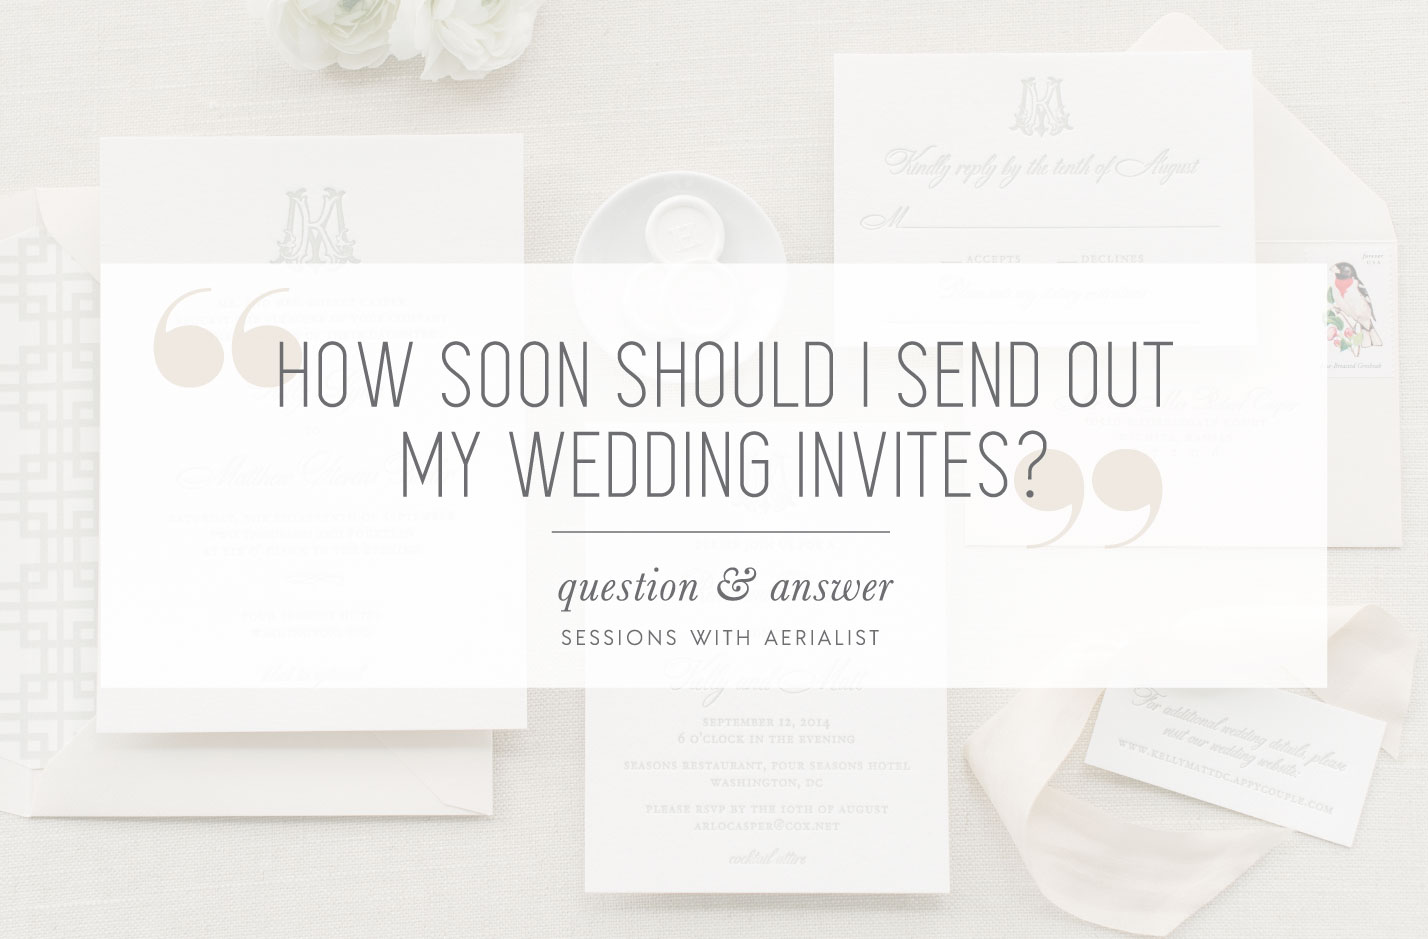 How Soon Before A Wedding Should You Send Out Invitations: When To Send Out Your Wedding Invitations